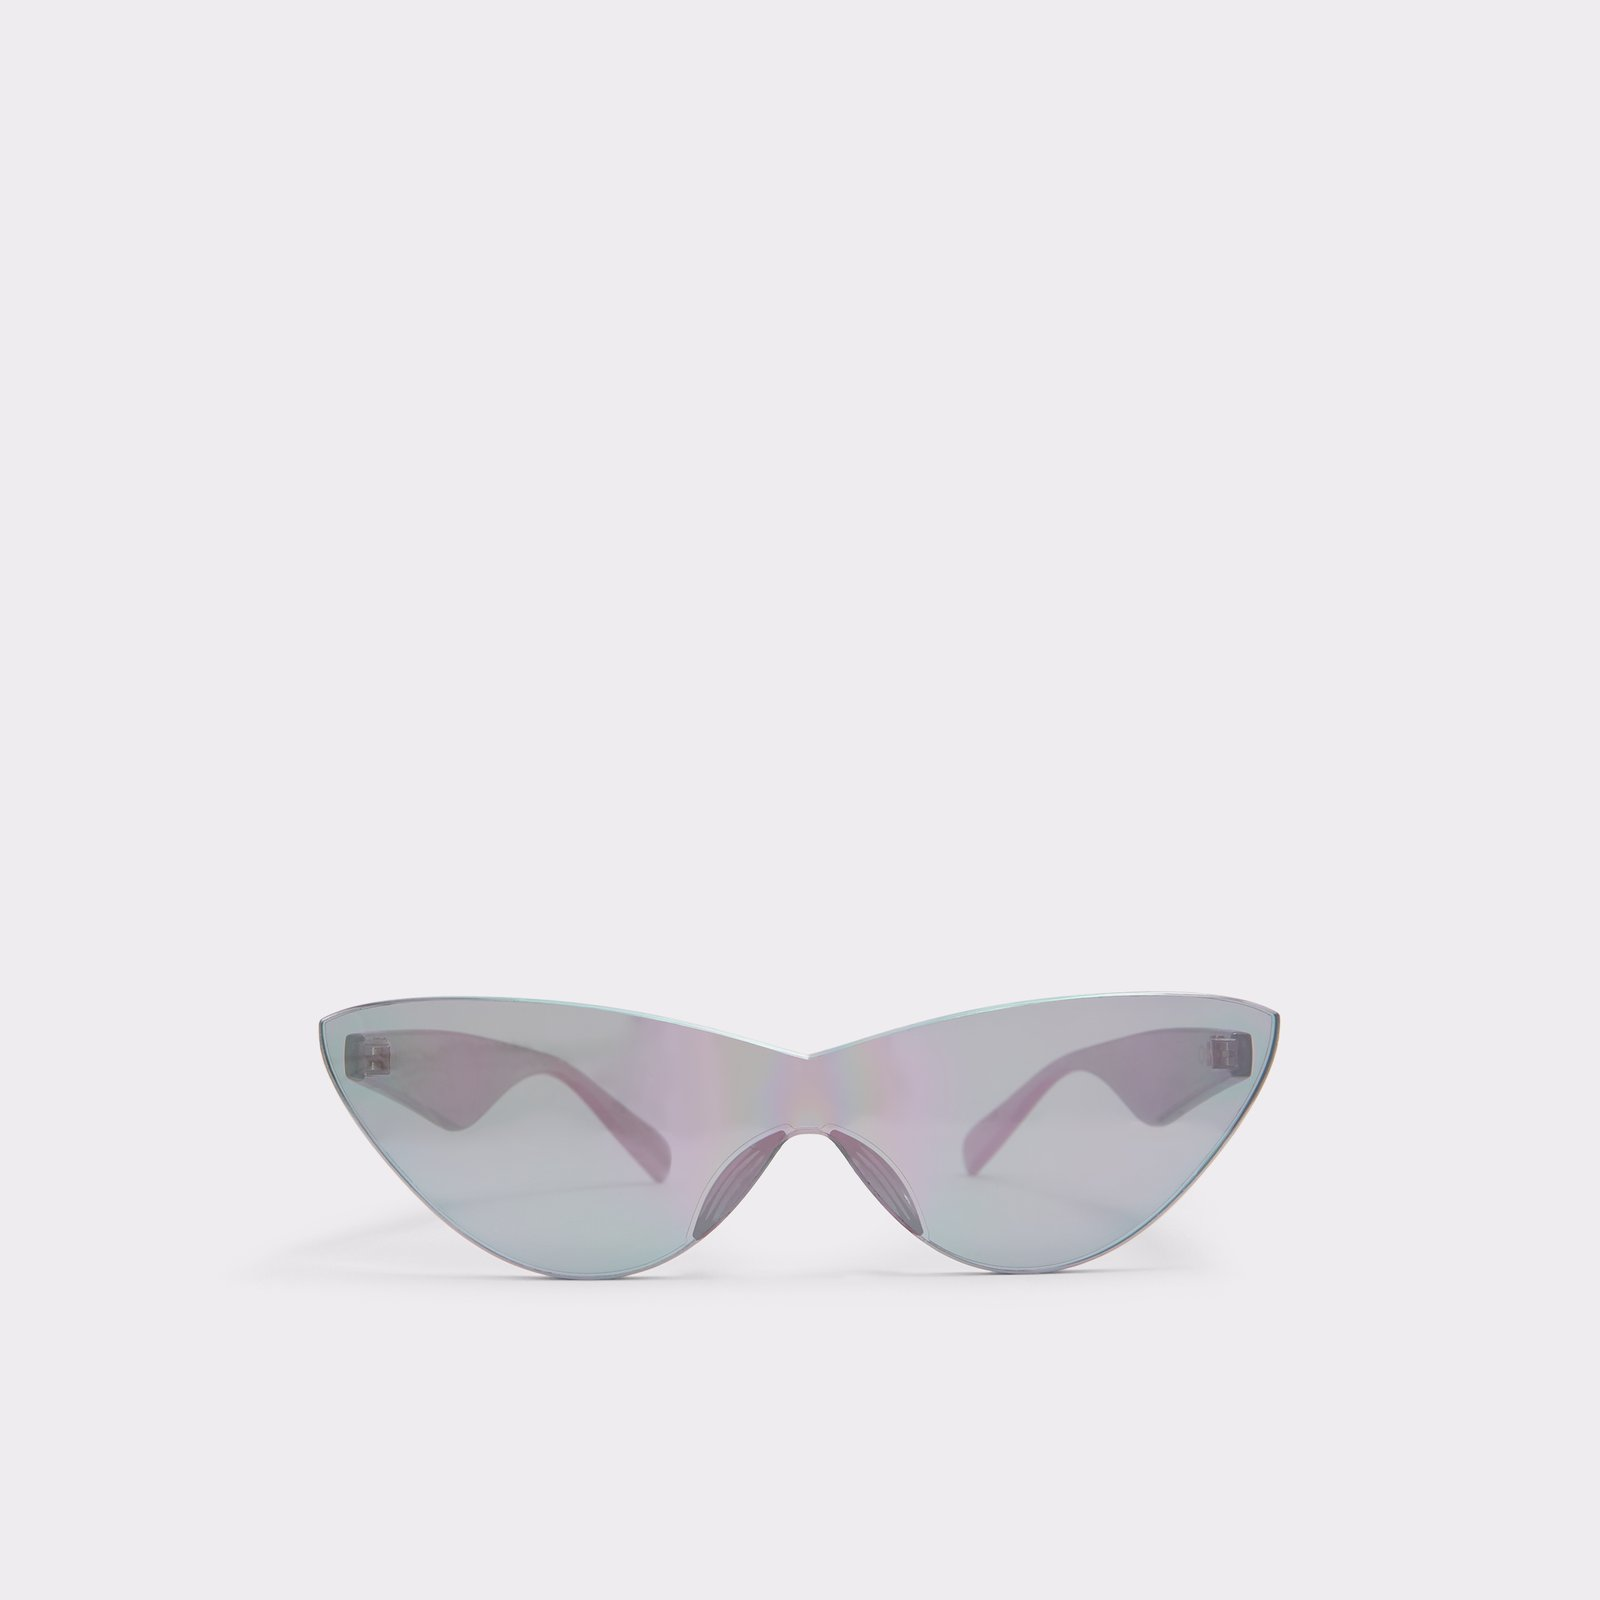 Aldo cat-eye sunglasses